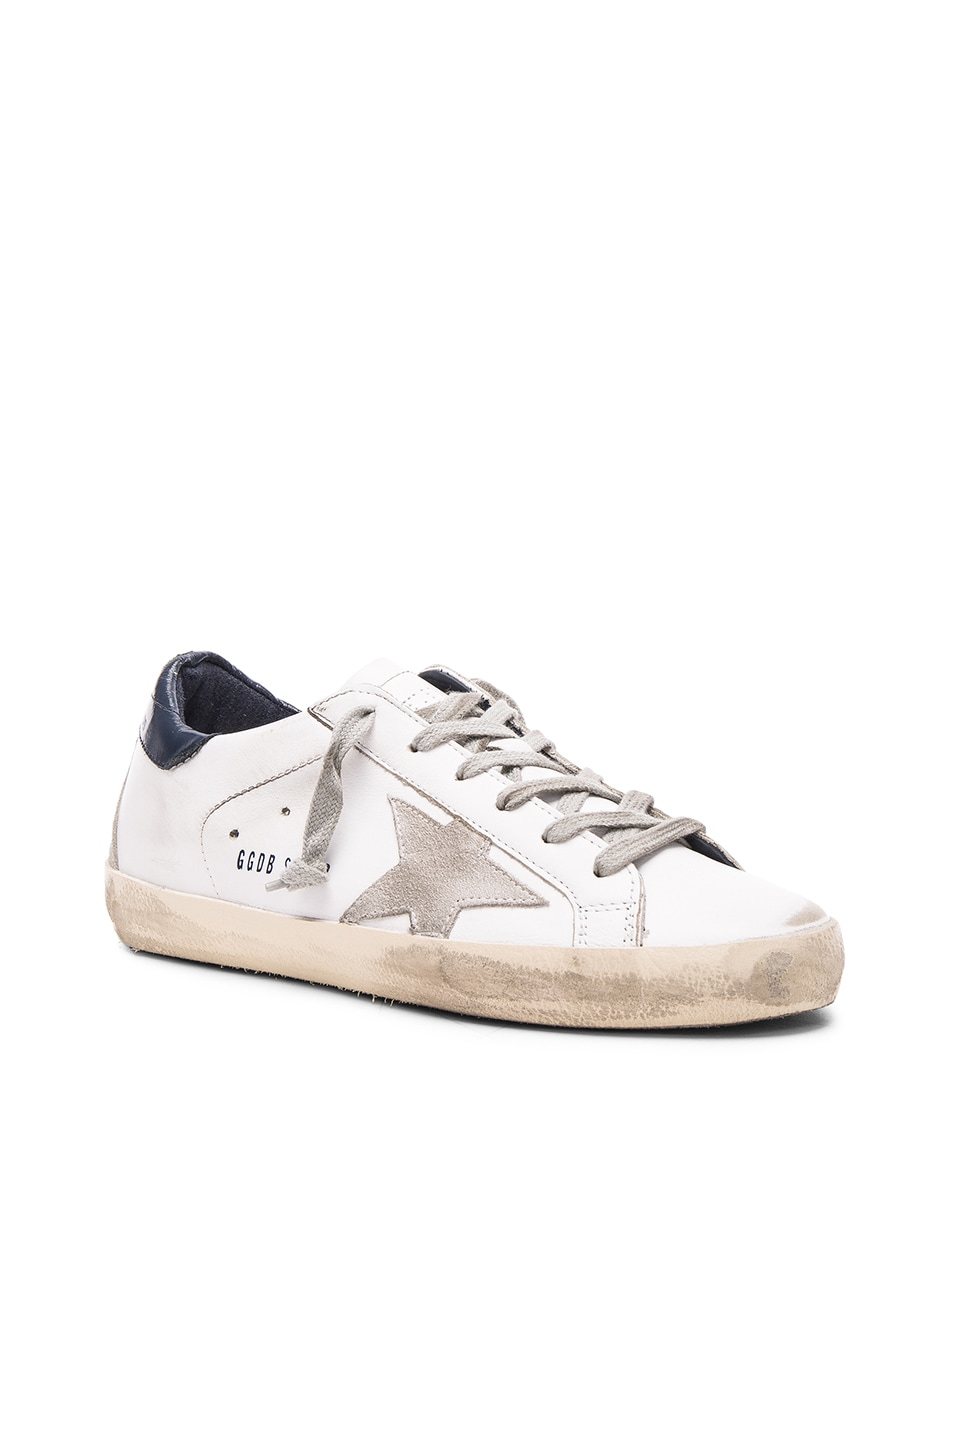 Image 2 of Golden Goose Leather Superstar Low Sneakers in White & Blue